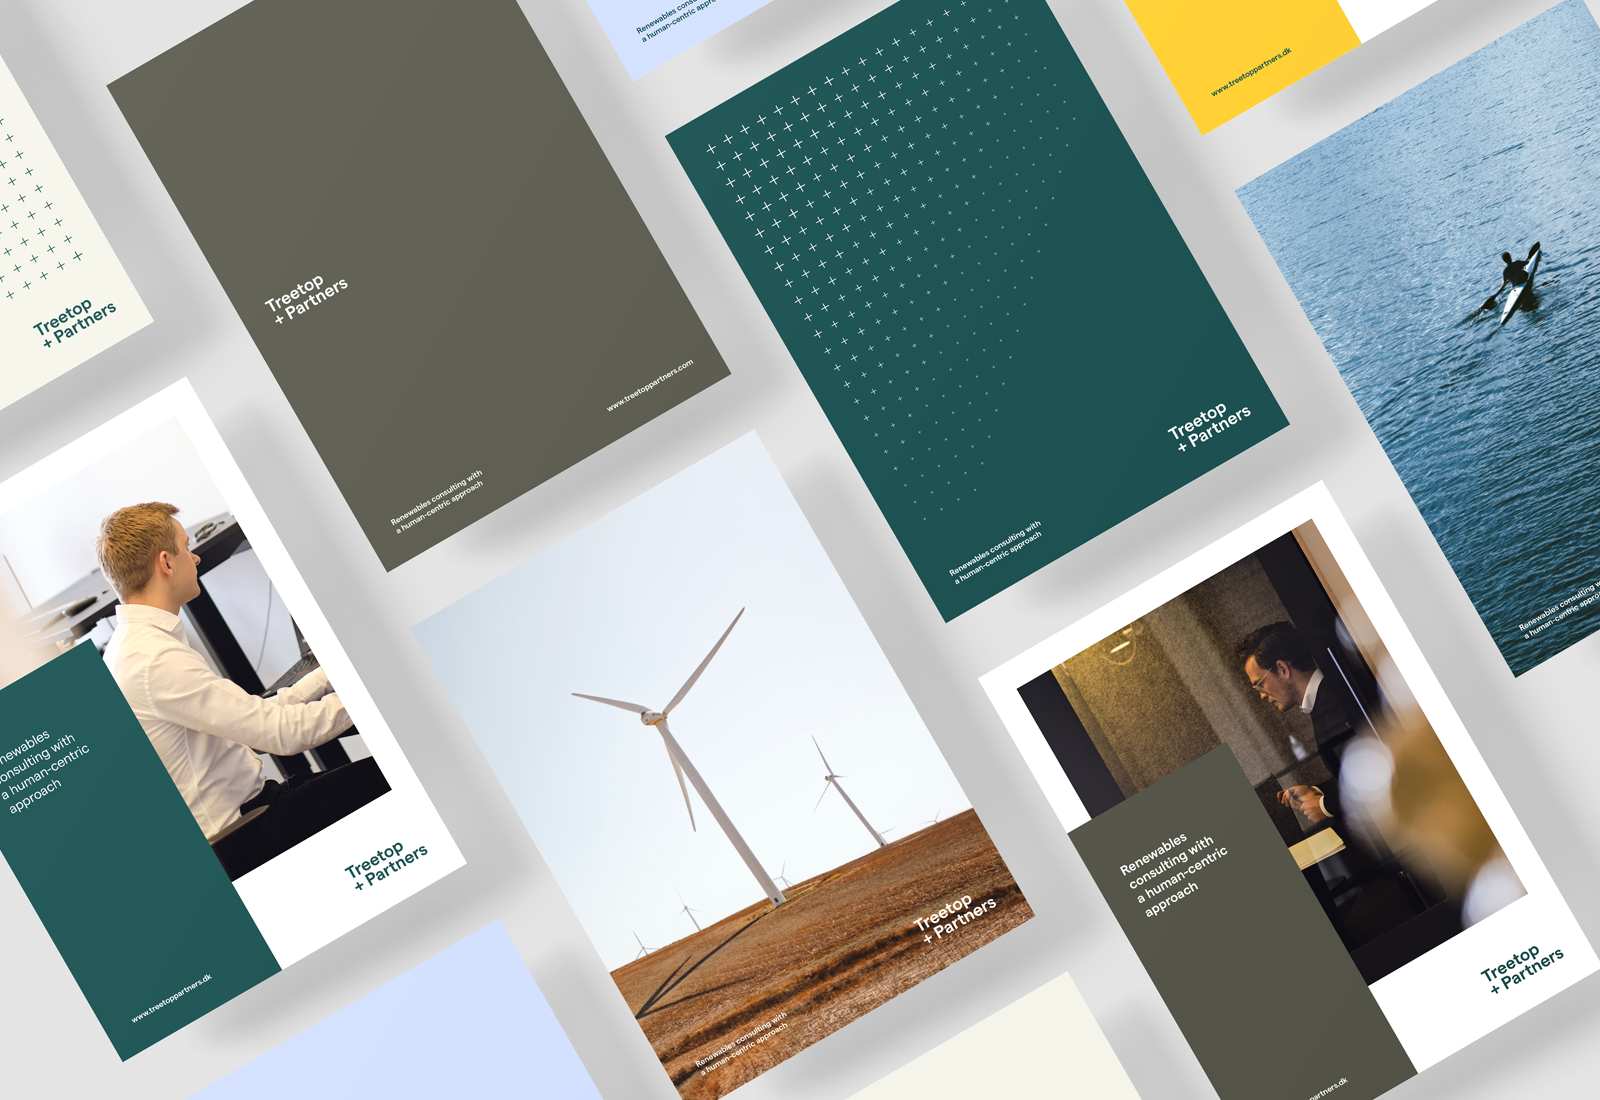 Treetop Partners updates its visual identity to align with its values